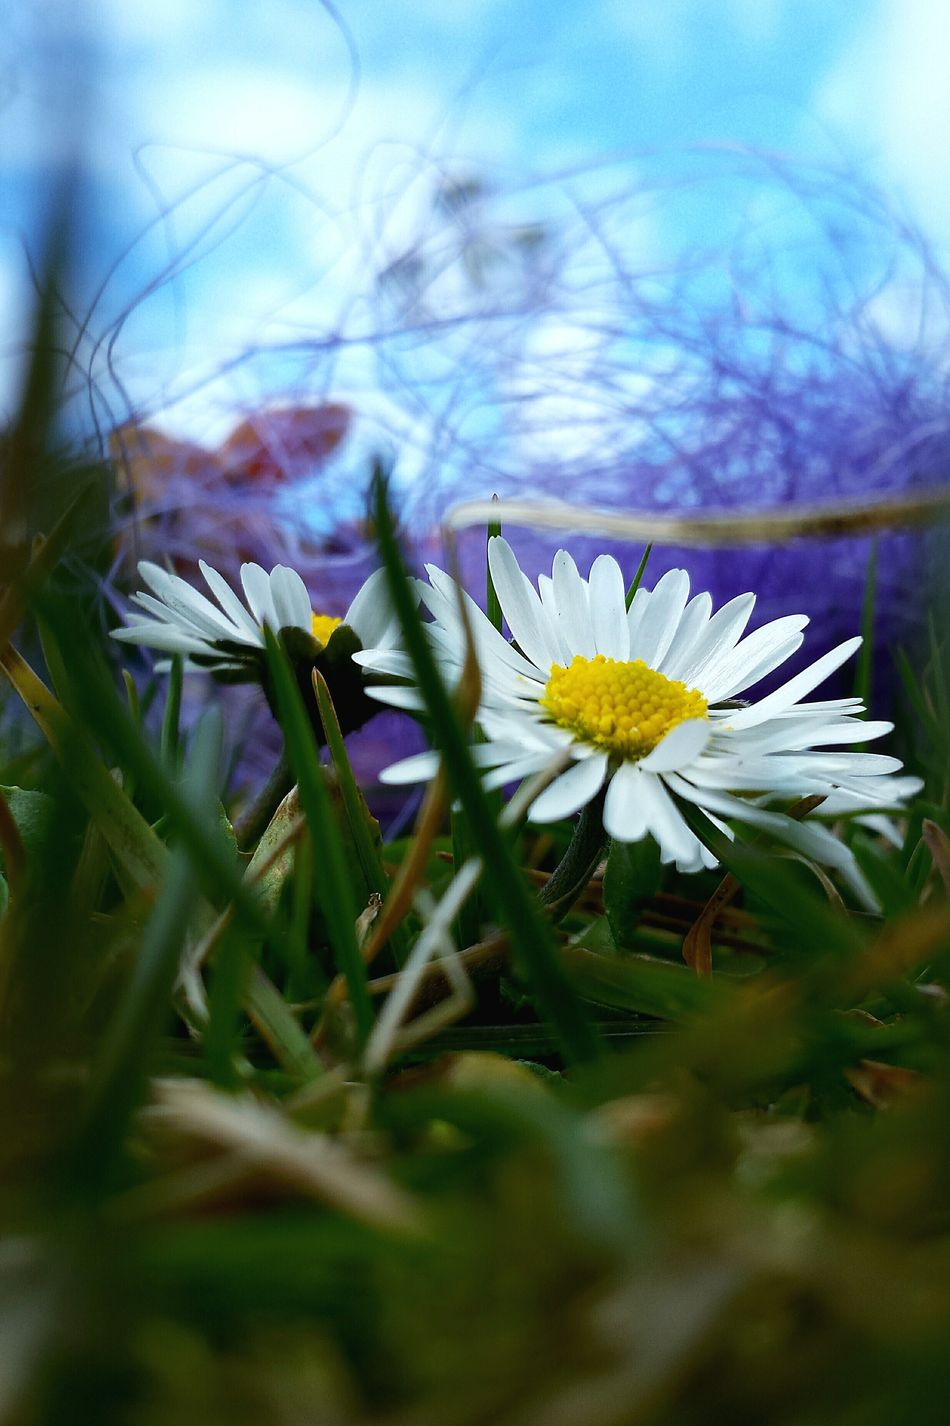 Grass And Sky Ladyphotographerofthemonth Blütenzauber Still Life Things I Like Urban Spring Fever Spring Time Blüten Zum Essen 🌾 Daisies Are My Favorite Daisy Daisies Learn & Shoot: Composition Learn & Shoot: Layering Beautyful Colours Beautiful Colour Combination Blue Sky Spring Flowers Close-up Close Up Landscapes With WhiteWall Easter Ready Blütenträume Here Belongs To Me Flower Collection Grass